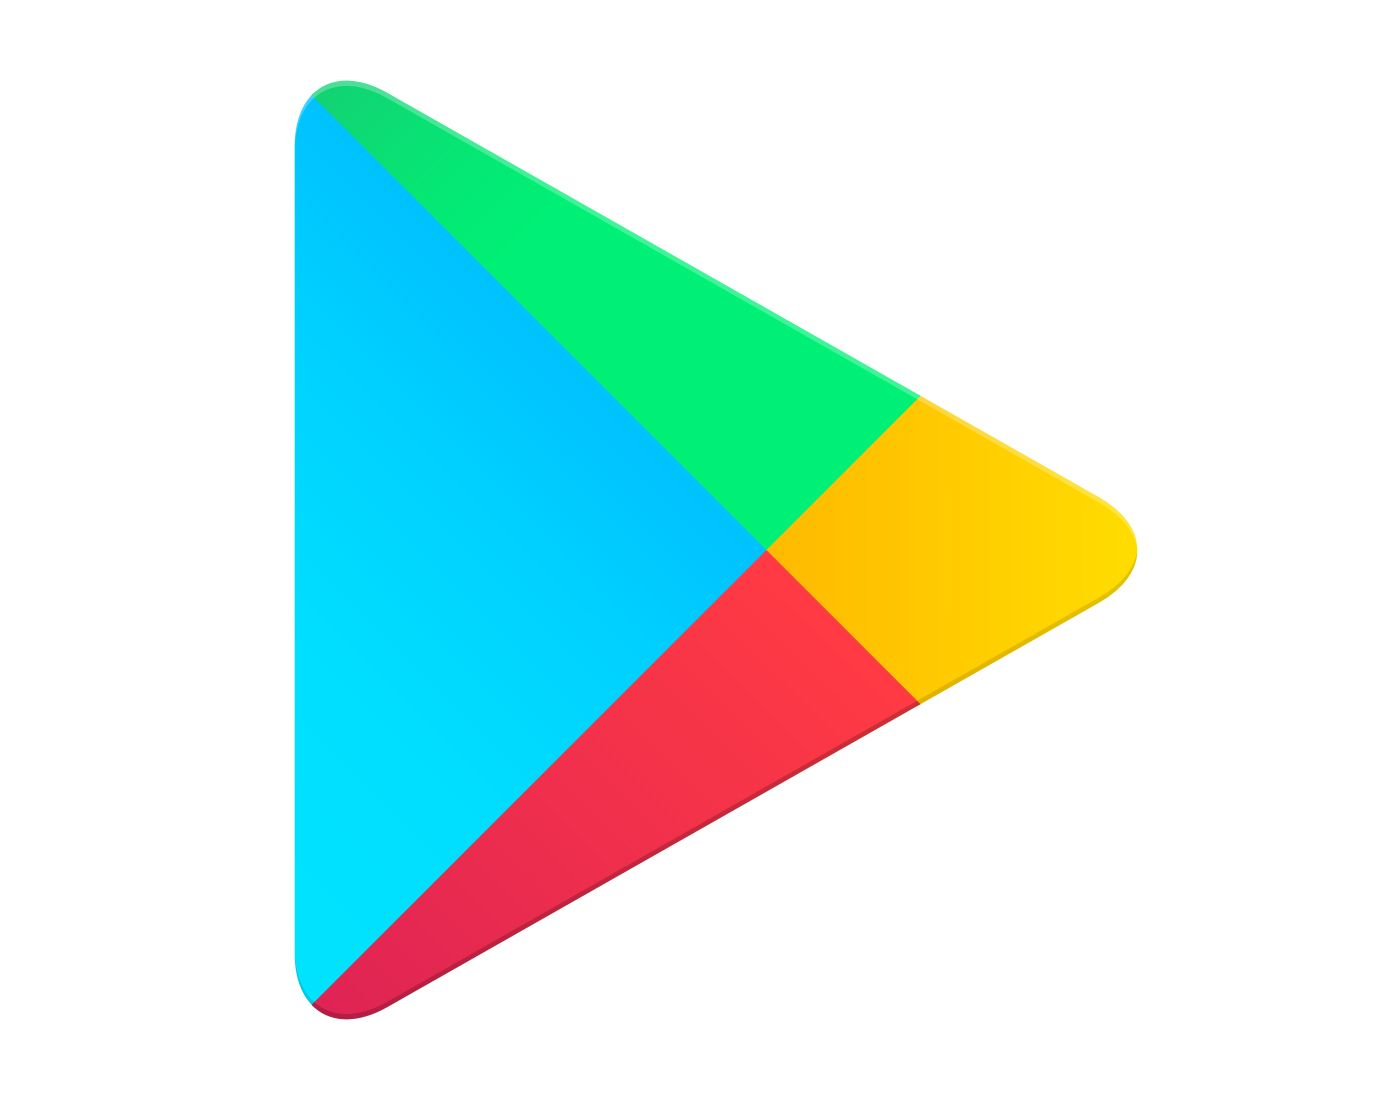 Learn How to Take Advantage of the Google Play Store Perks